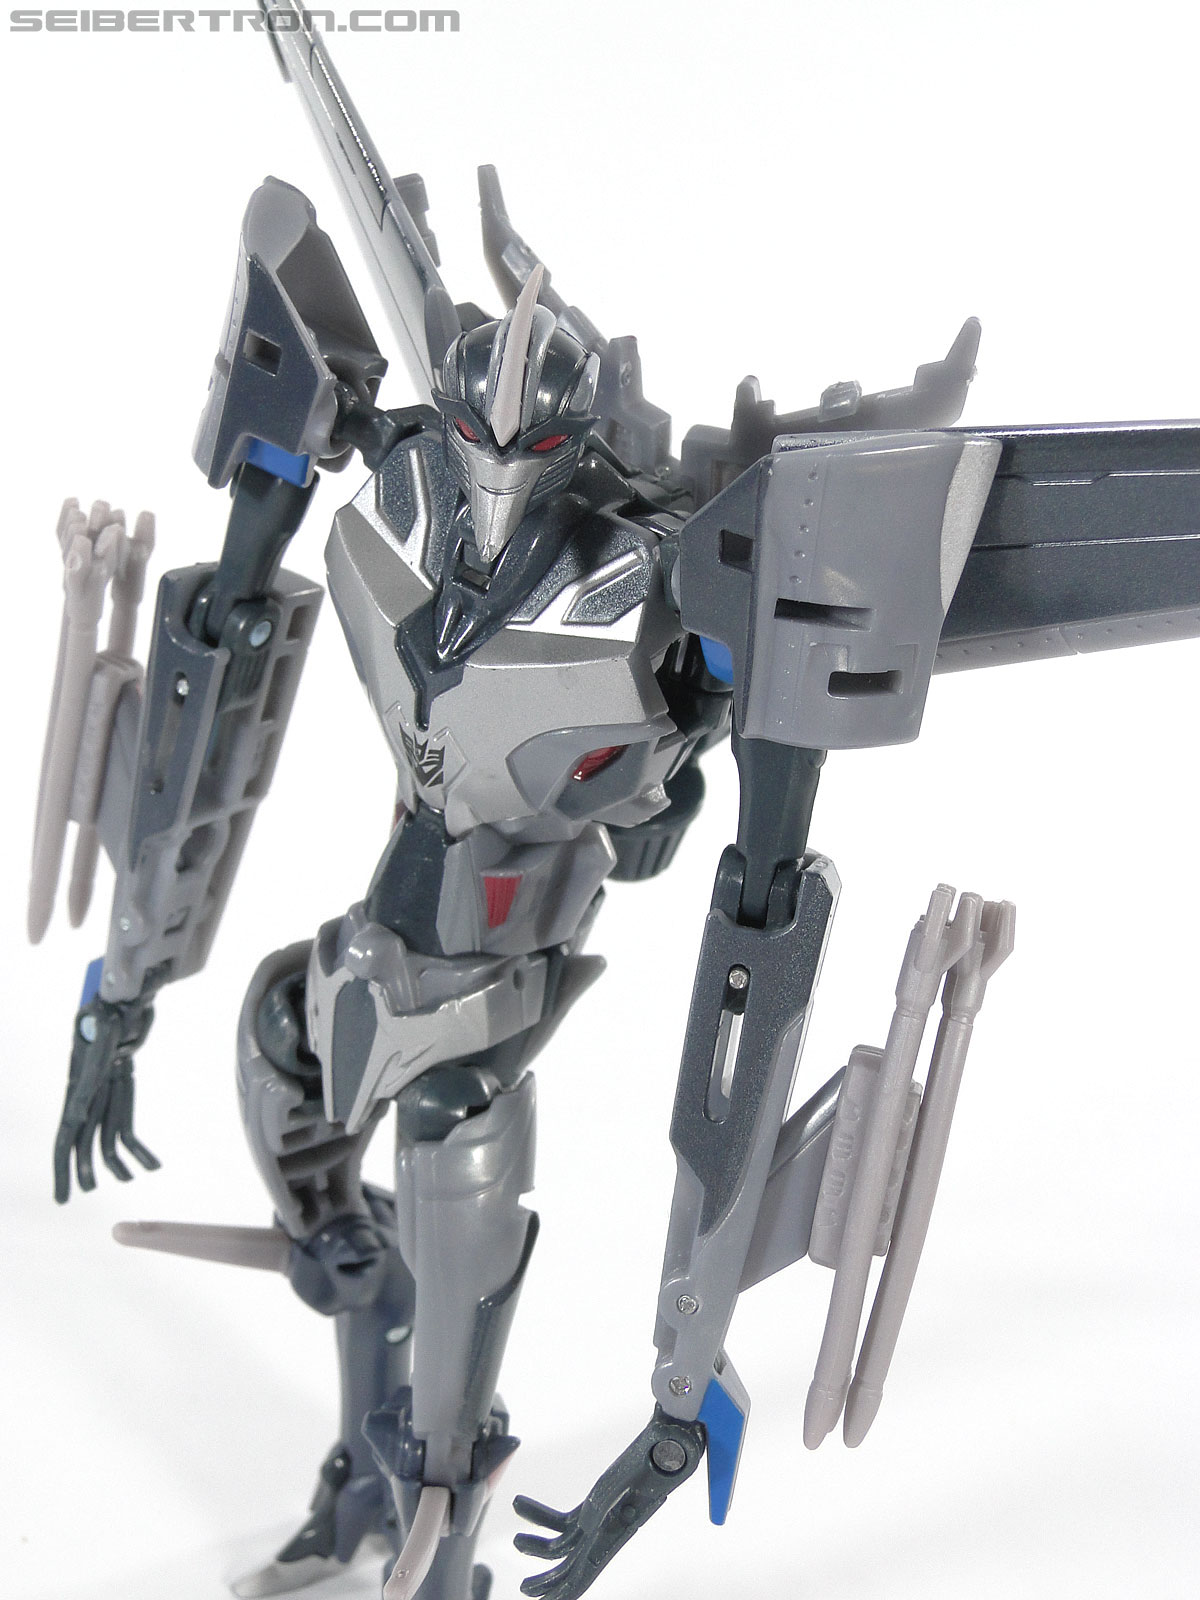 Transformers Prime: First Edition Starscream (Image #100 of 136)